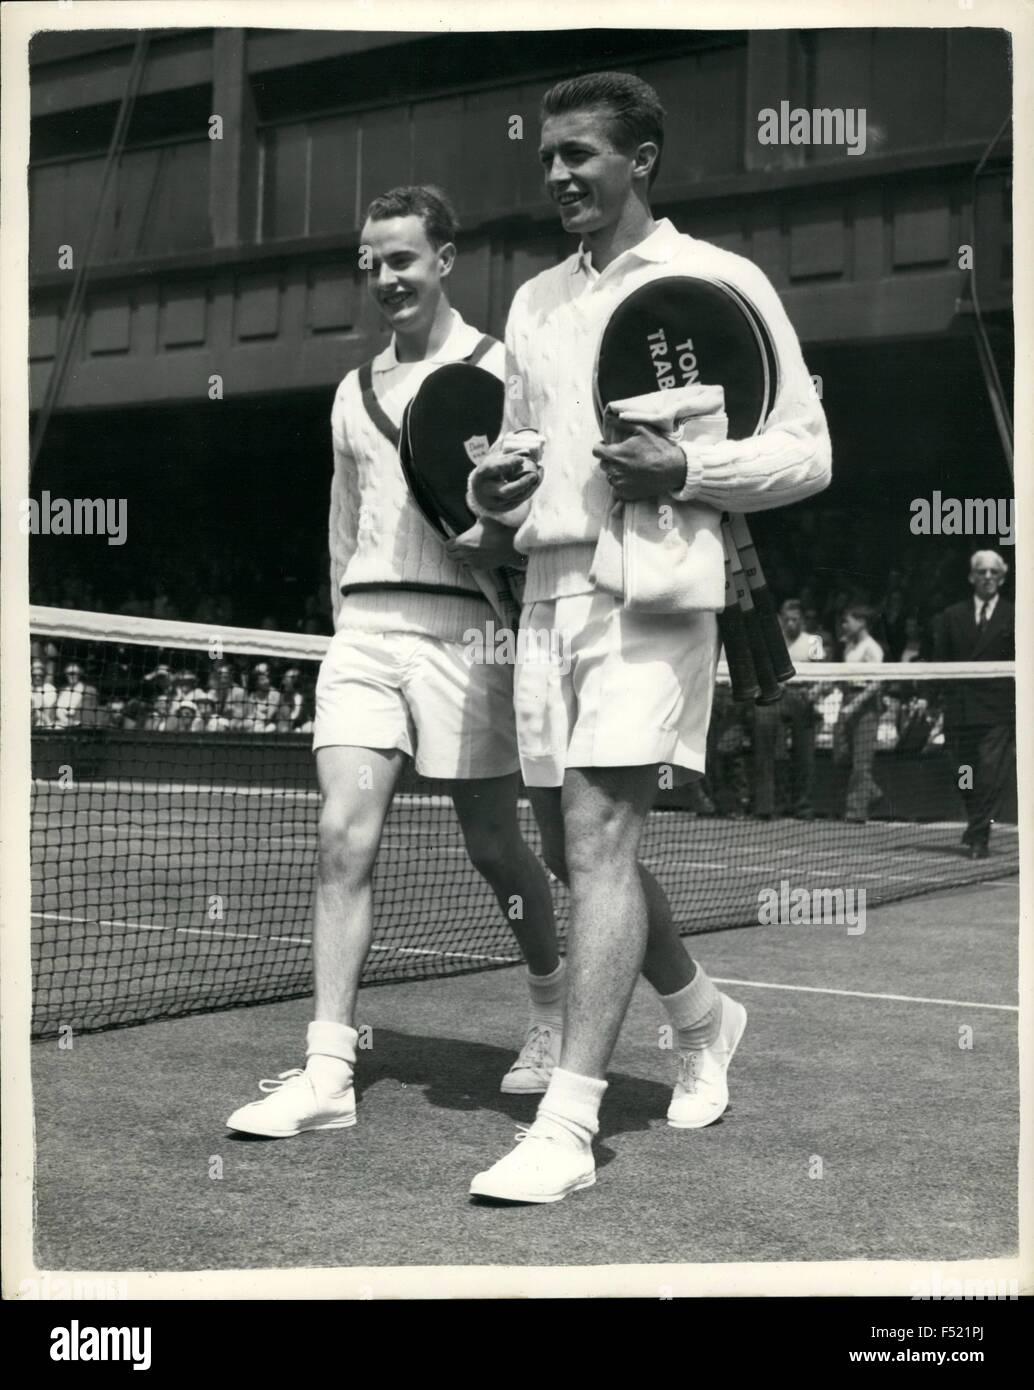 1962 Wimbledon Trabert v Wilson Keystone Shows R K